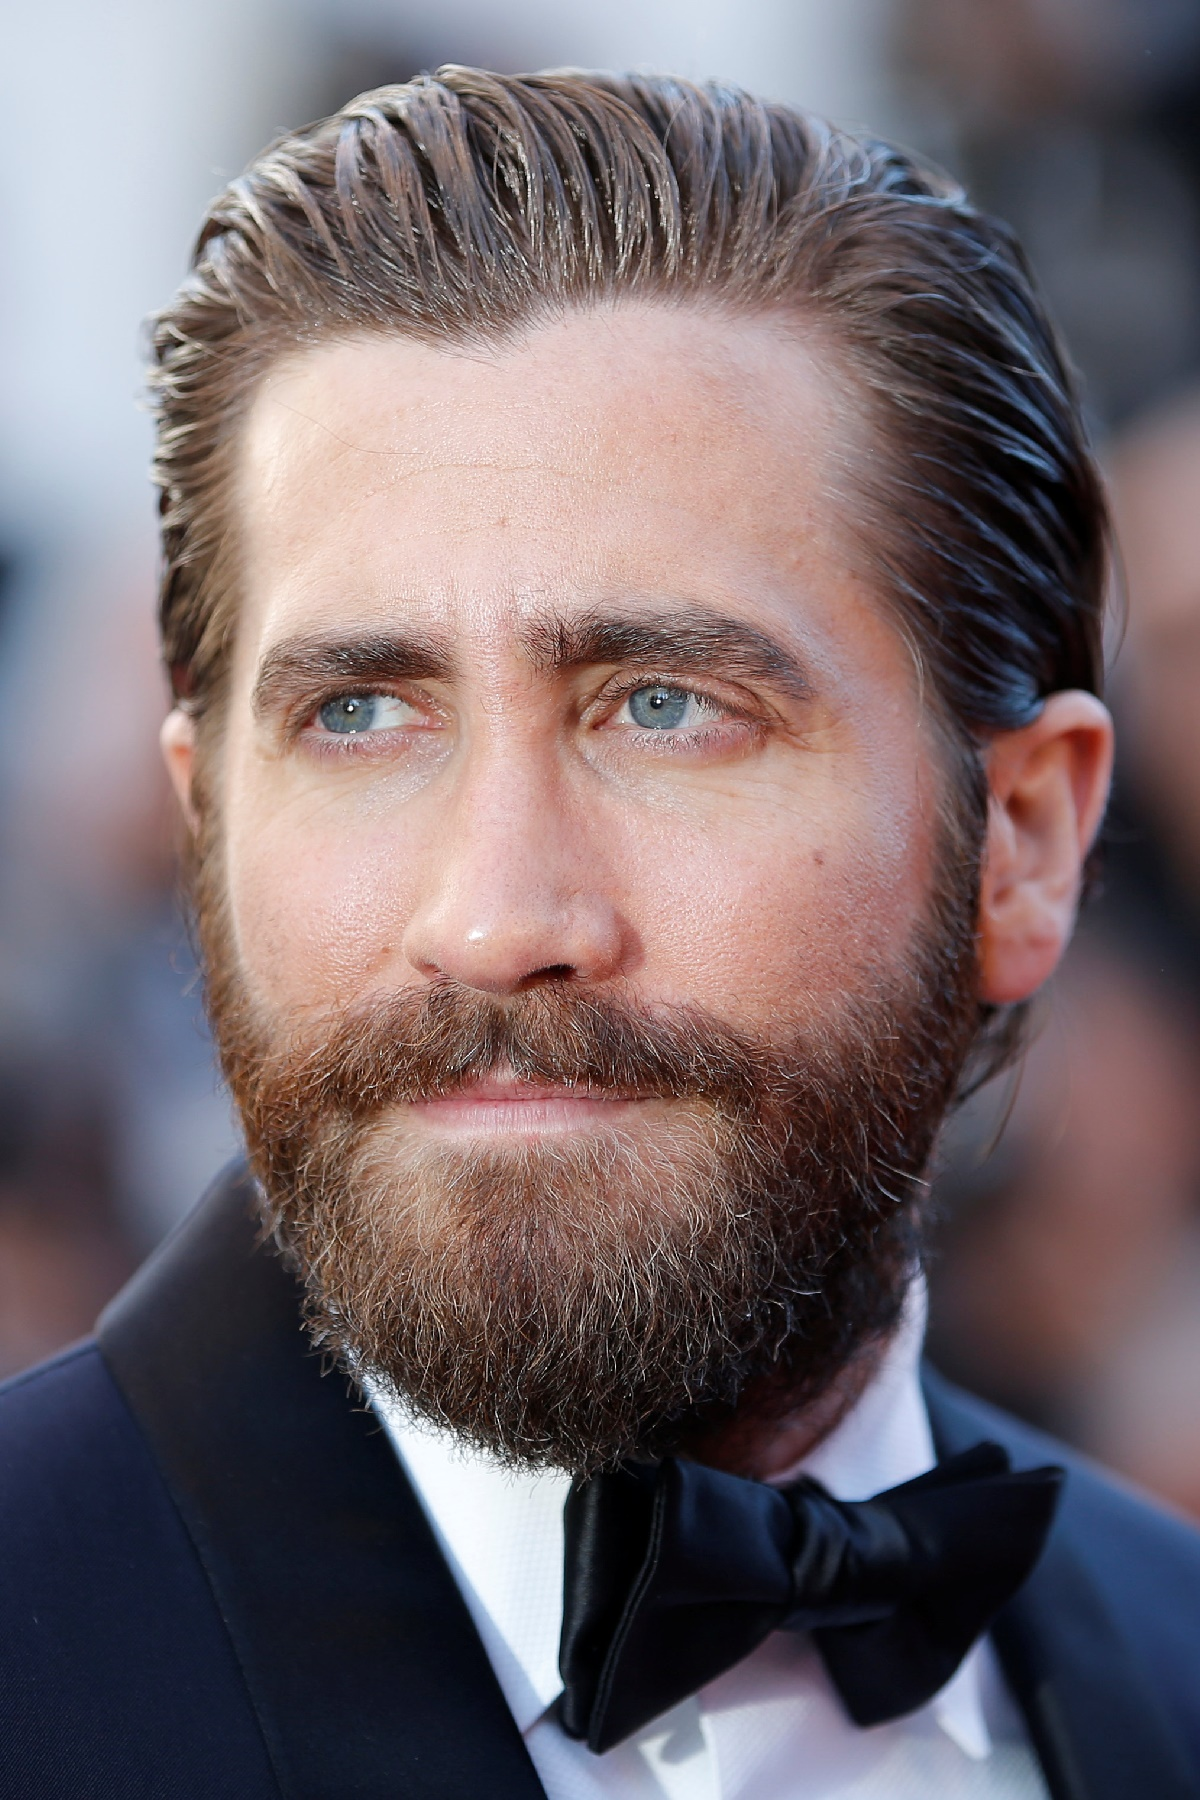 "70th Cannes Film Festival - Screening of the film ""Okja"" in competition - Red Carpet Arrivals - Cannes, France. 19/05/2017. Cast member Jake Gyllenhaal poses. REUTERS/Stephane Mahe"